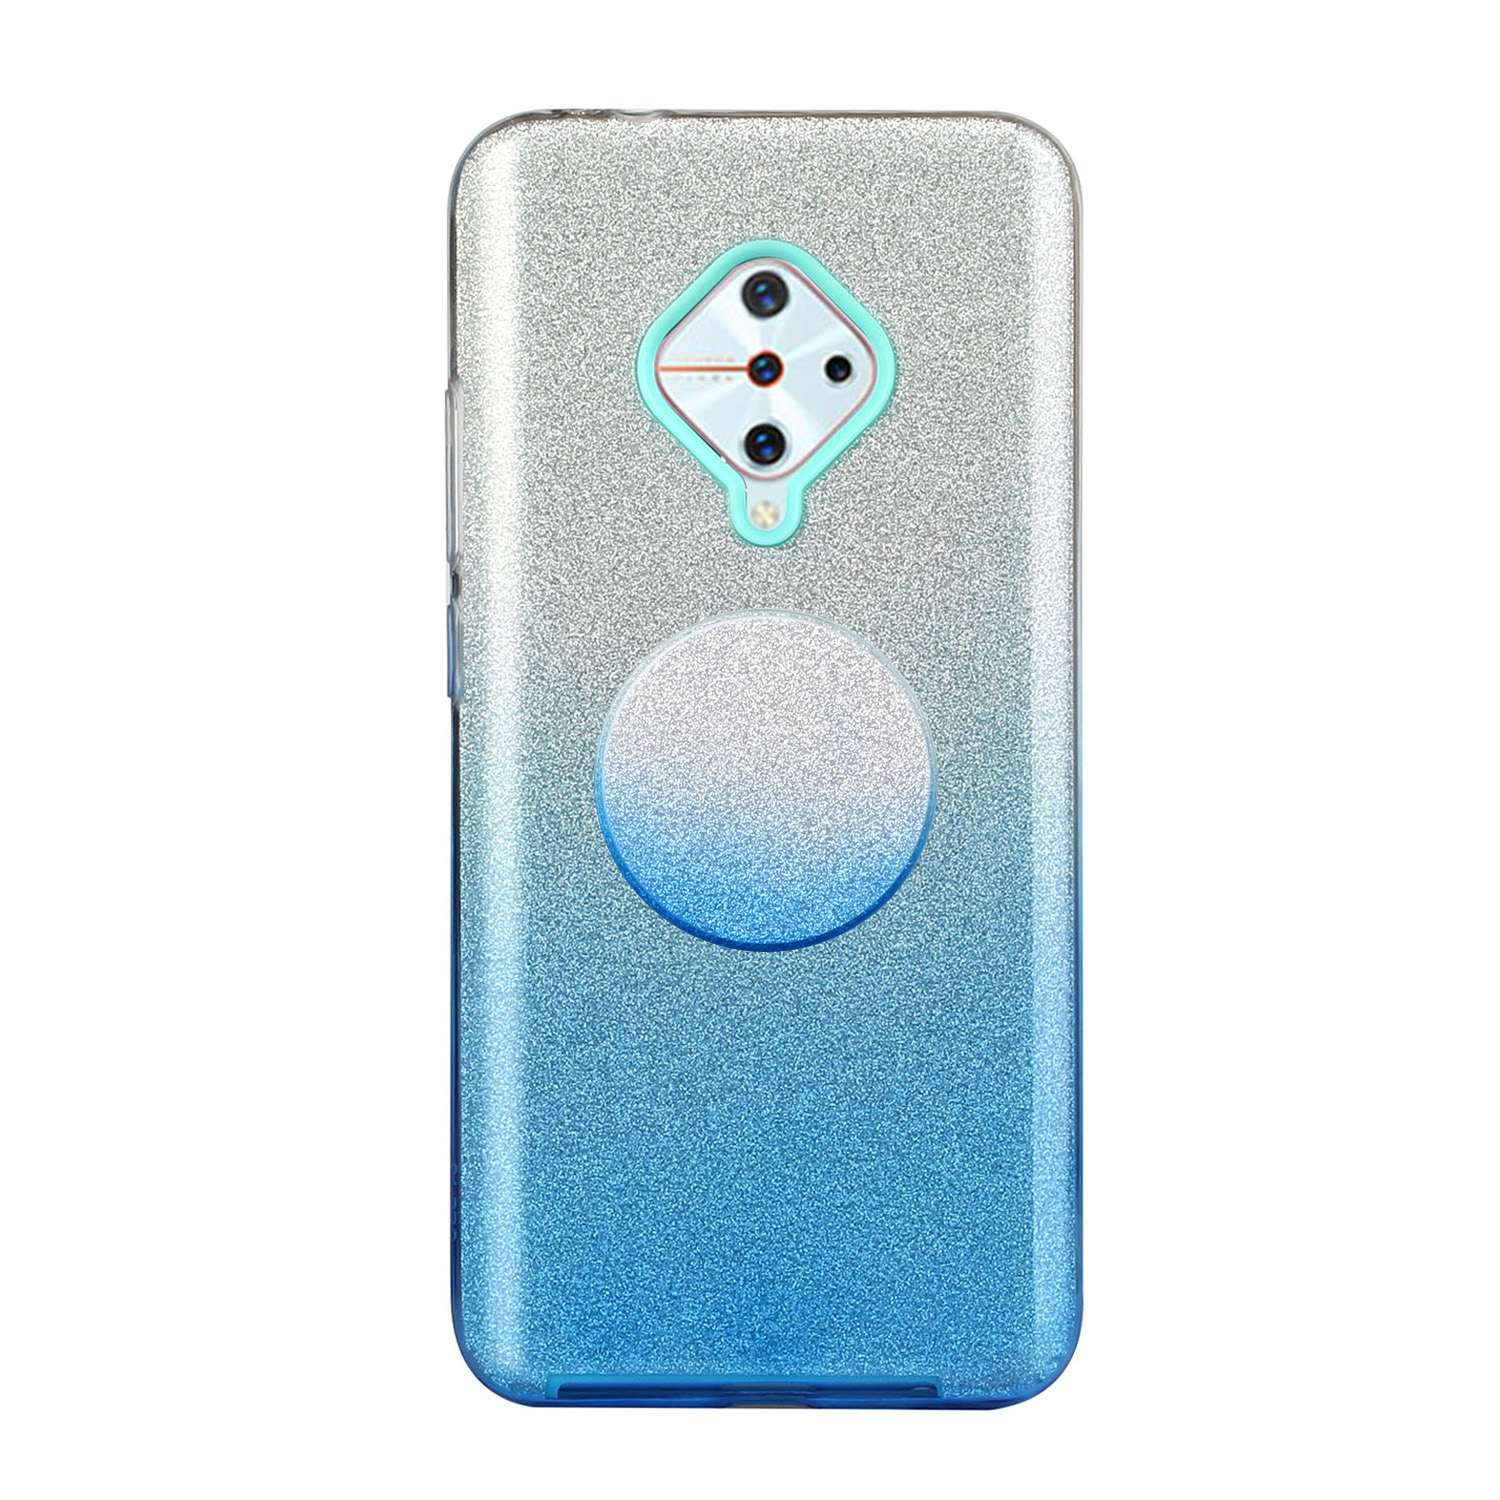 For VIVO Y91/Y93/Y95 with hole/V17/S1 Pro/Y95 Phone Case Gradient Color Glitter Powder Phone Cover with Airbag Bracket blue